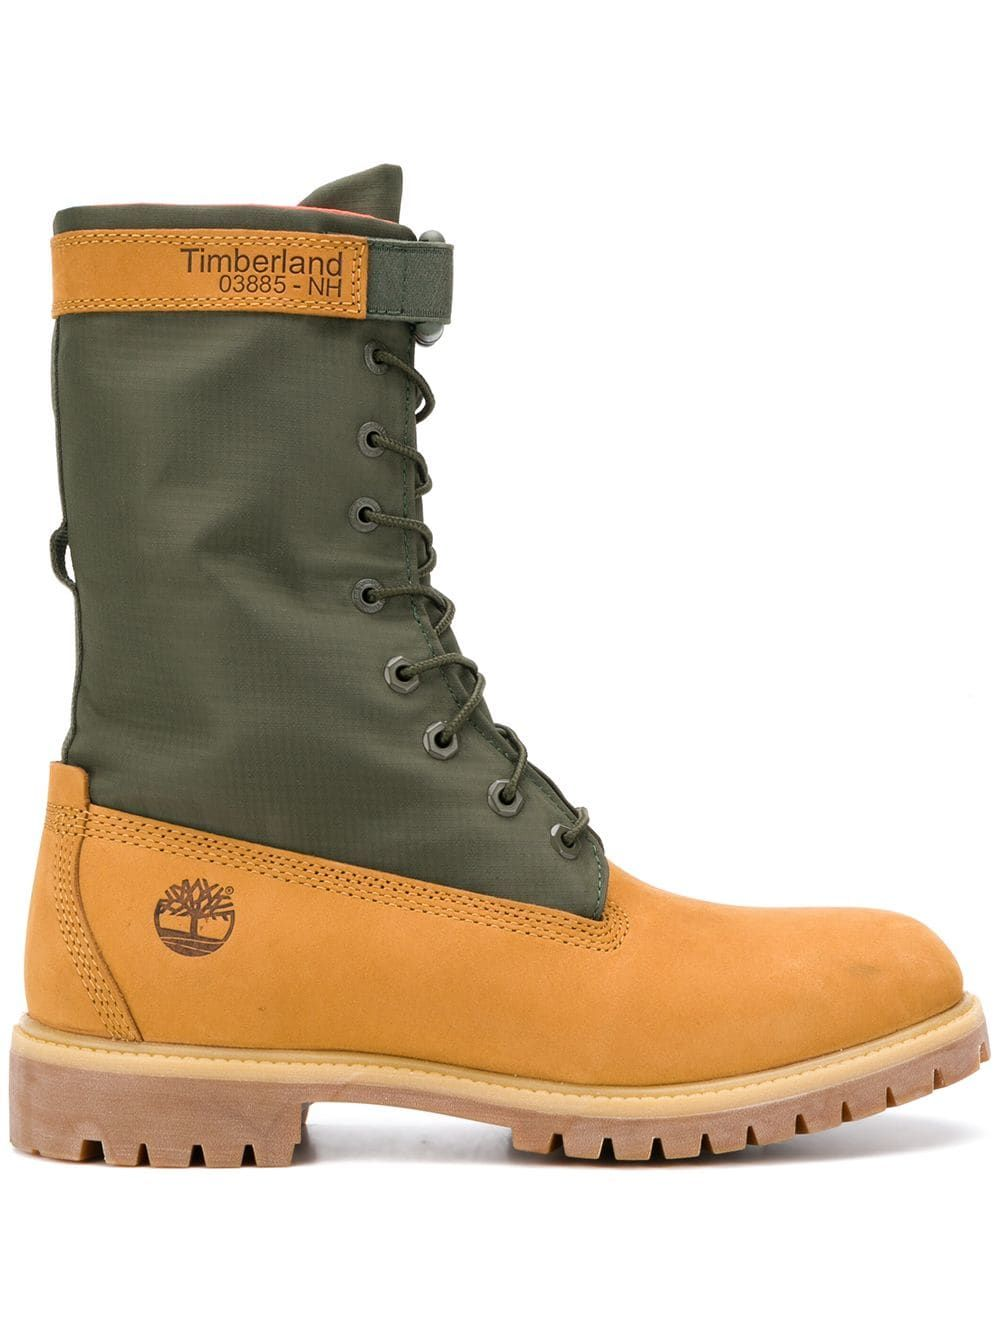 newest 70b8e 5c3f5 TIMBERLAND TIMBERLAND TIMBERLAND CA1QY8SUEDEHA HA FURS   SKINS- LEATHER -  YELLOW.  timberland  shoes